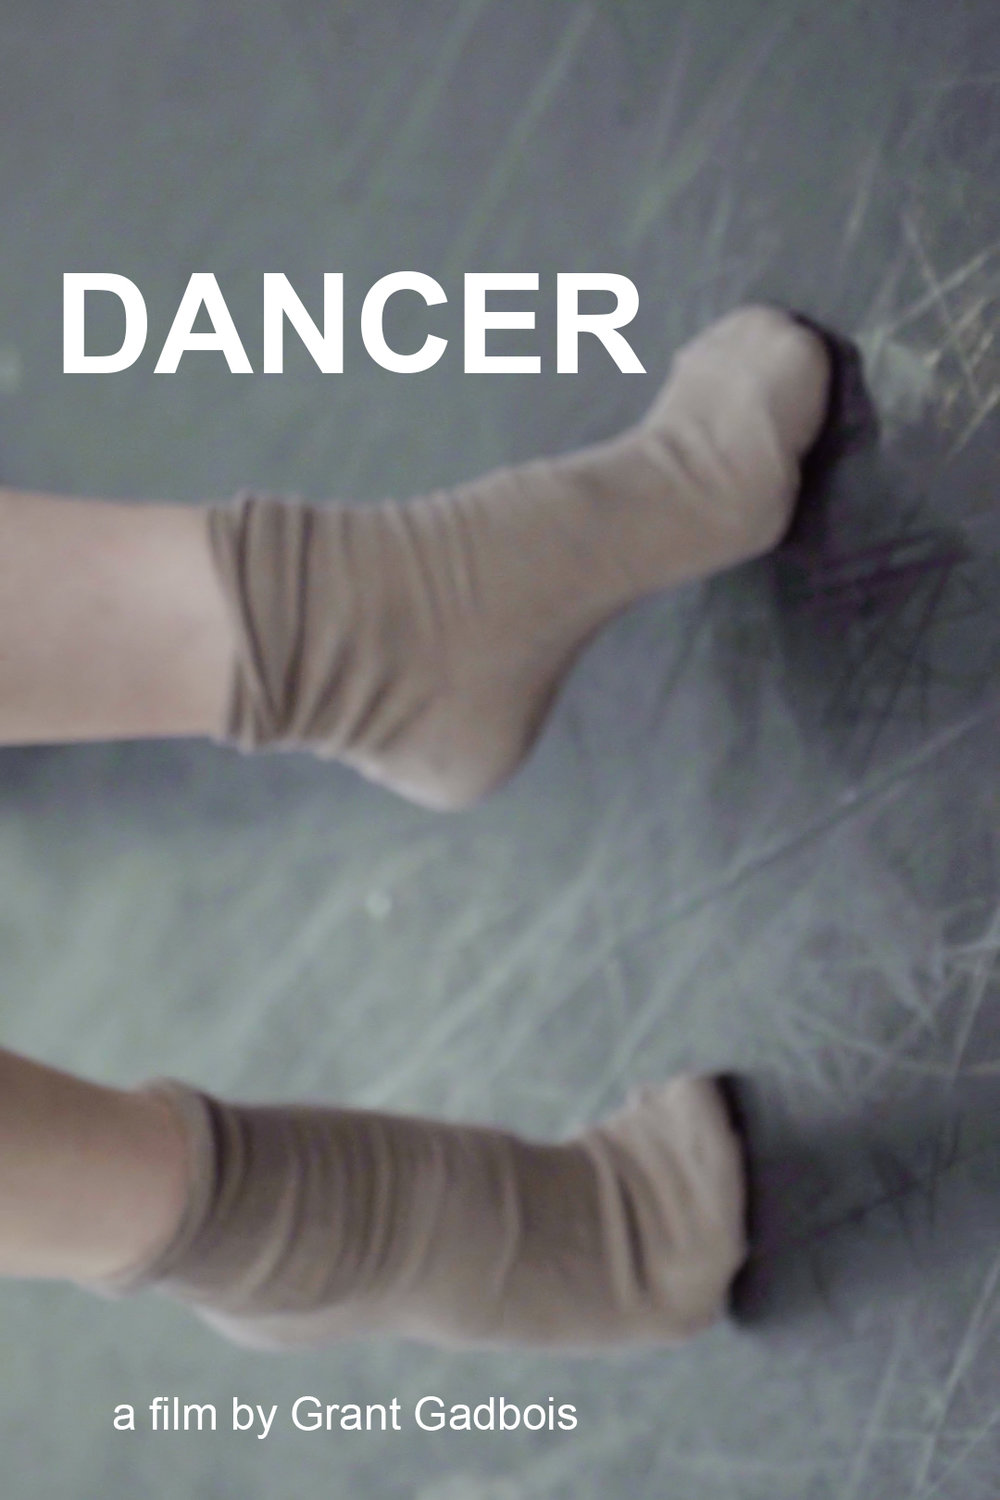 Dancer - This short documentary follows a group of dancers as they prepare for a singular performance, choreographed in part for a thesis performance at Loyola Marymount University. The filmmaker was lucky enough to establish a close relationship with the featured dancers, which helped create the very personal, intimate feel within the film. What begins as an objective take on dance choreography becomes a subjective look into the eccentricities and quirks of the choreographer, as well as the life and mind of a dancer. Watch the full film below!